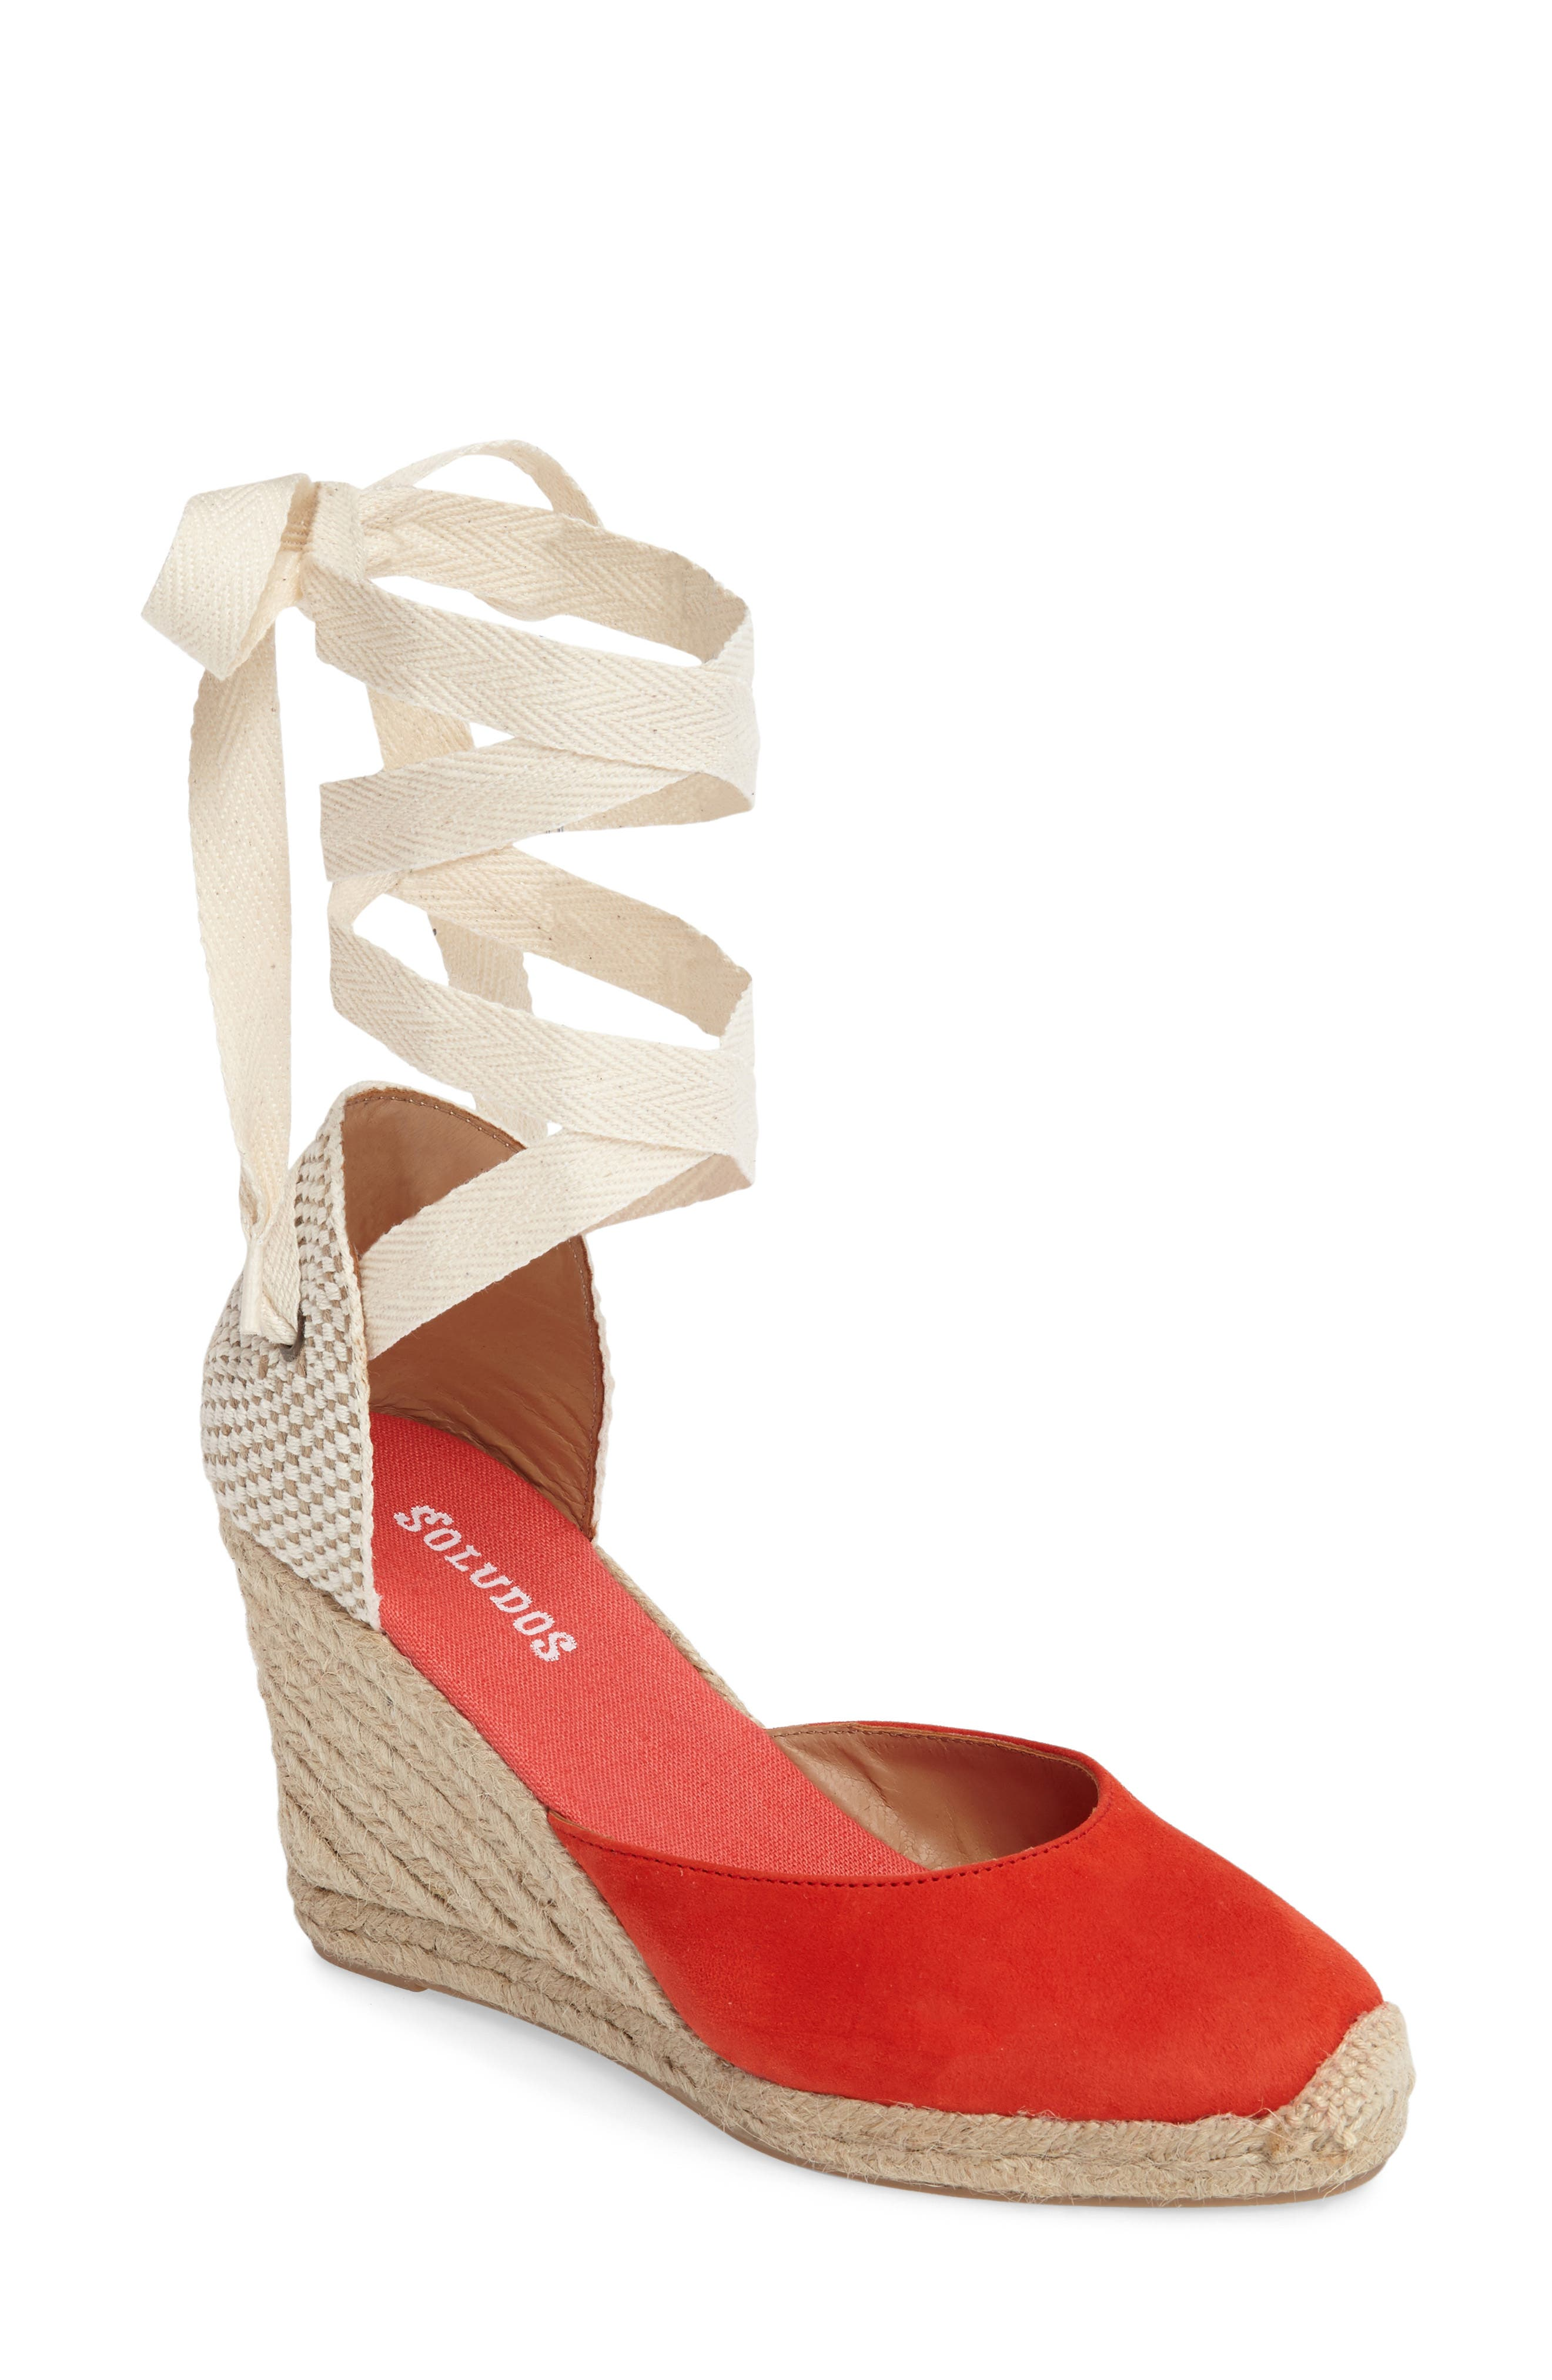 Wedge Sandal,                             Main thumbnail 1, color,                             Fire Red Suede